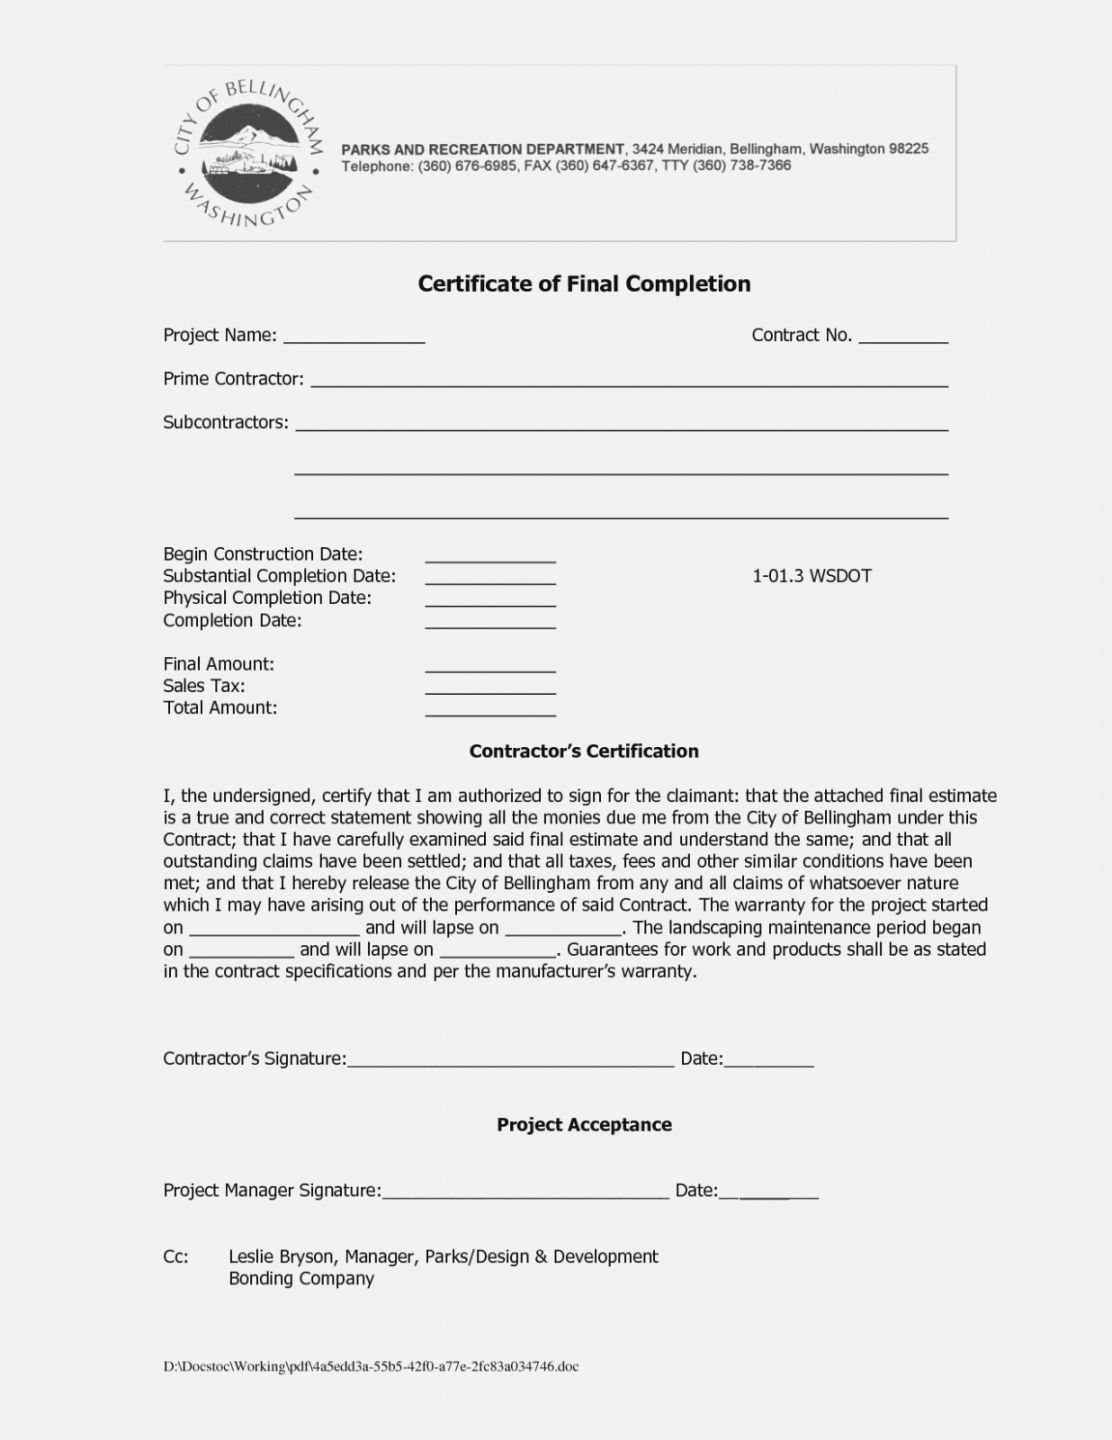 Roofing Certificate Of Completion Template Throughout Certificate Of Substan In 2020 Certificate Of Completion Template Certificate Templates Certificate Of Completion Certificate of substantial completion template